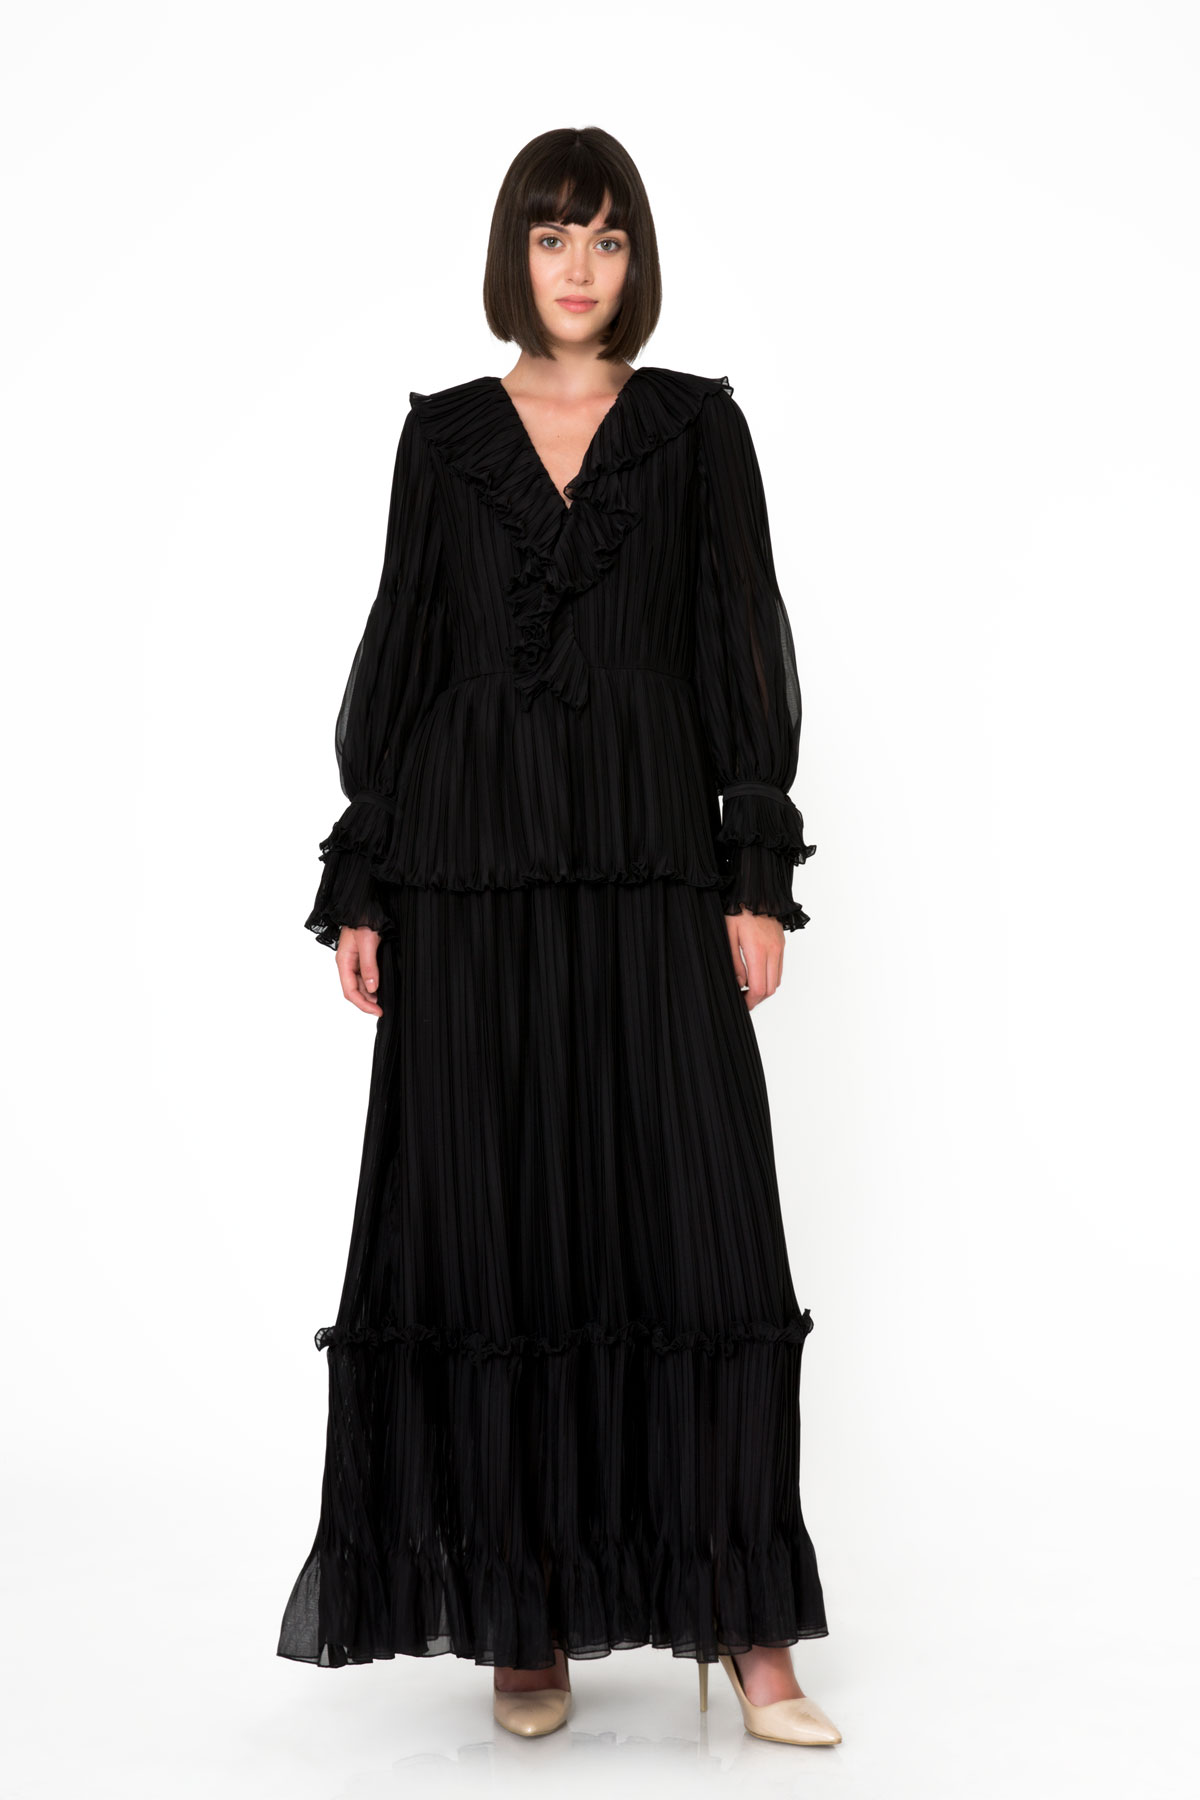 Embroidery Detailed Frilly Black Long Chiffon Dress